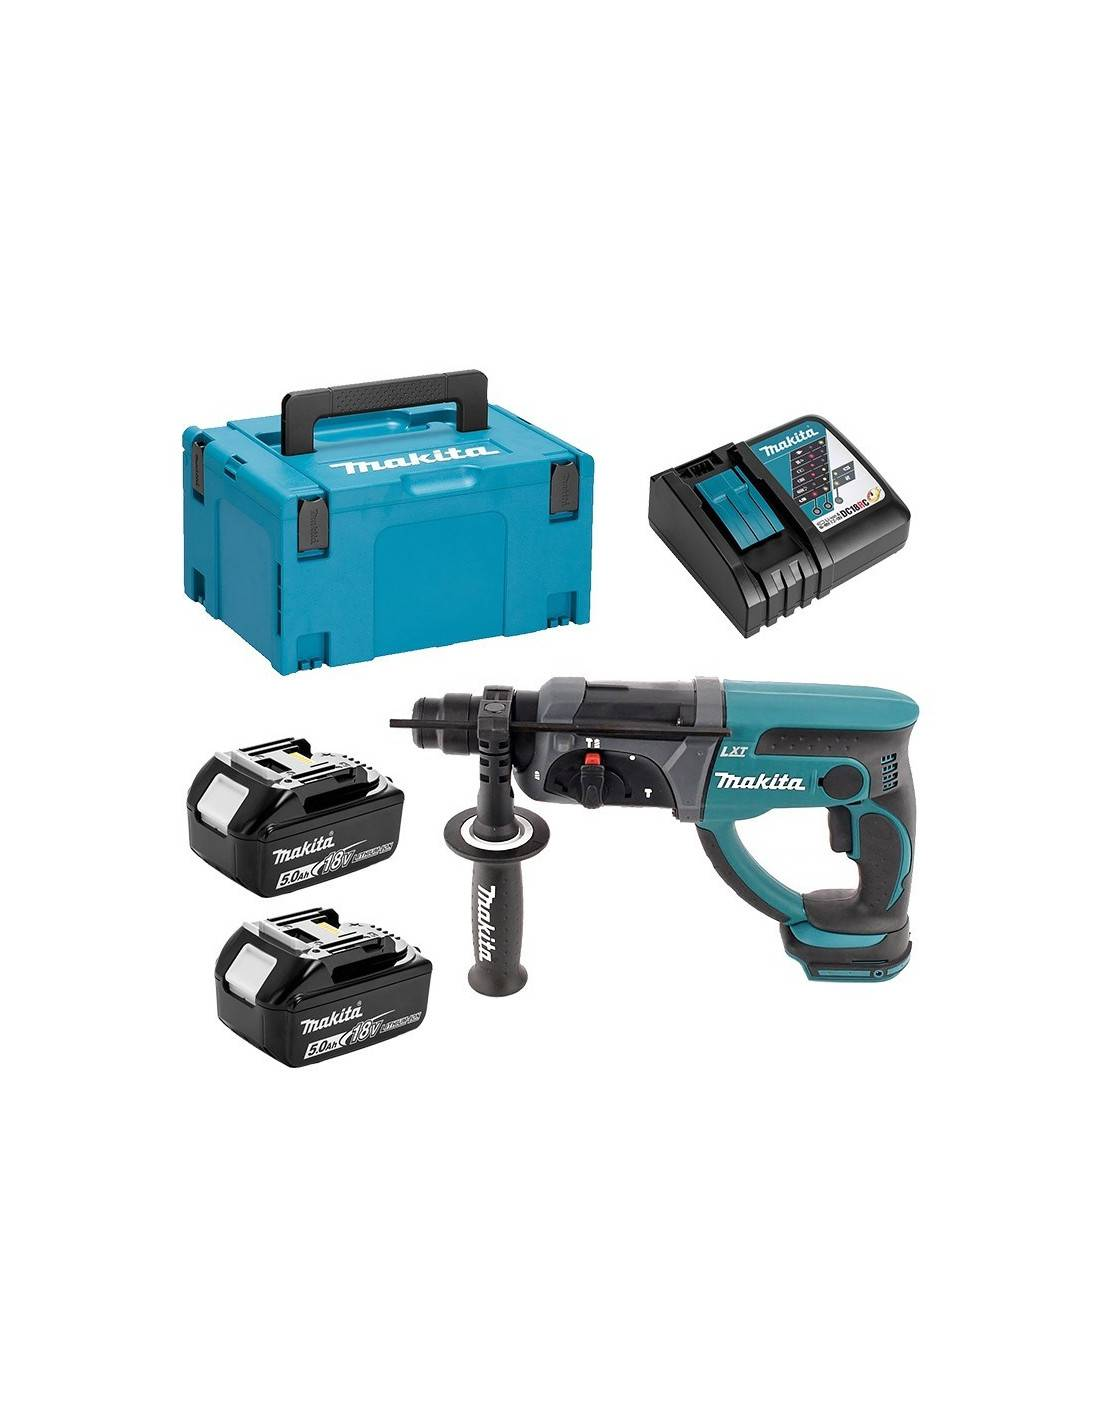 MAKITA - Perforateur Burineur sds+ 18V + 2 batteries 5Ah en coffret MAKPAC- DHR202RTJ